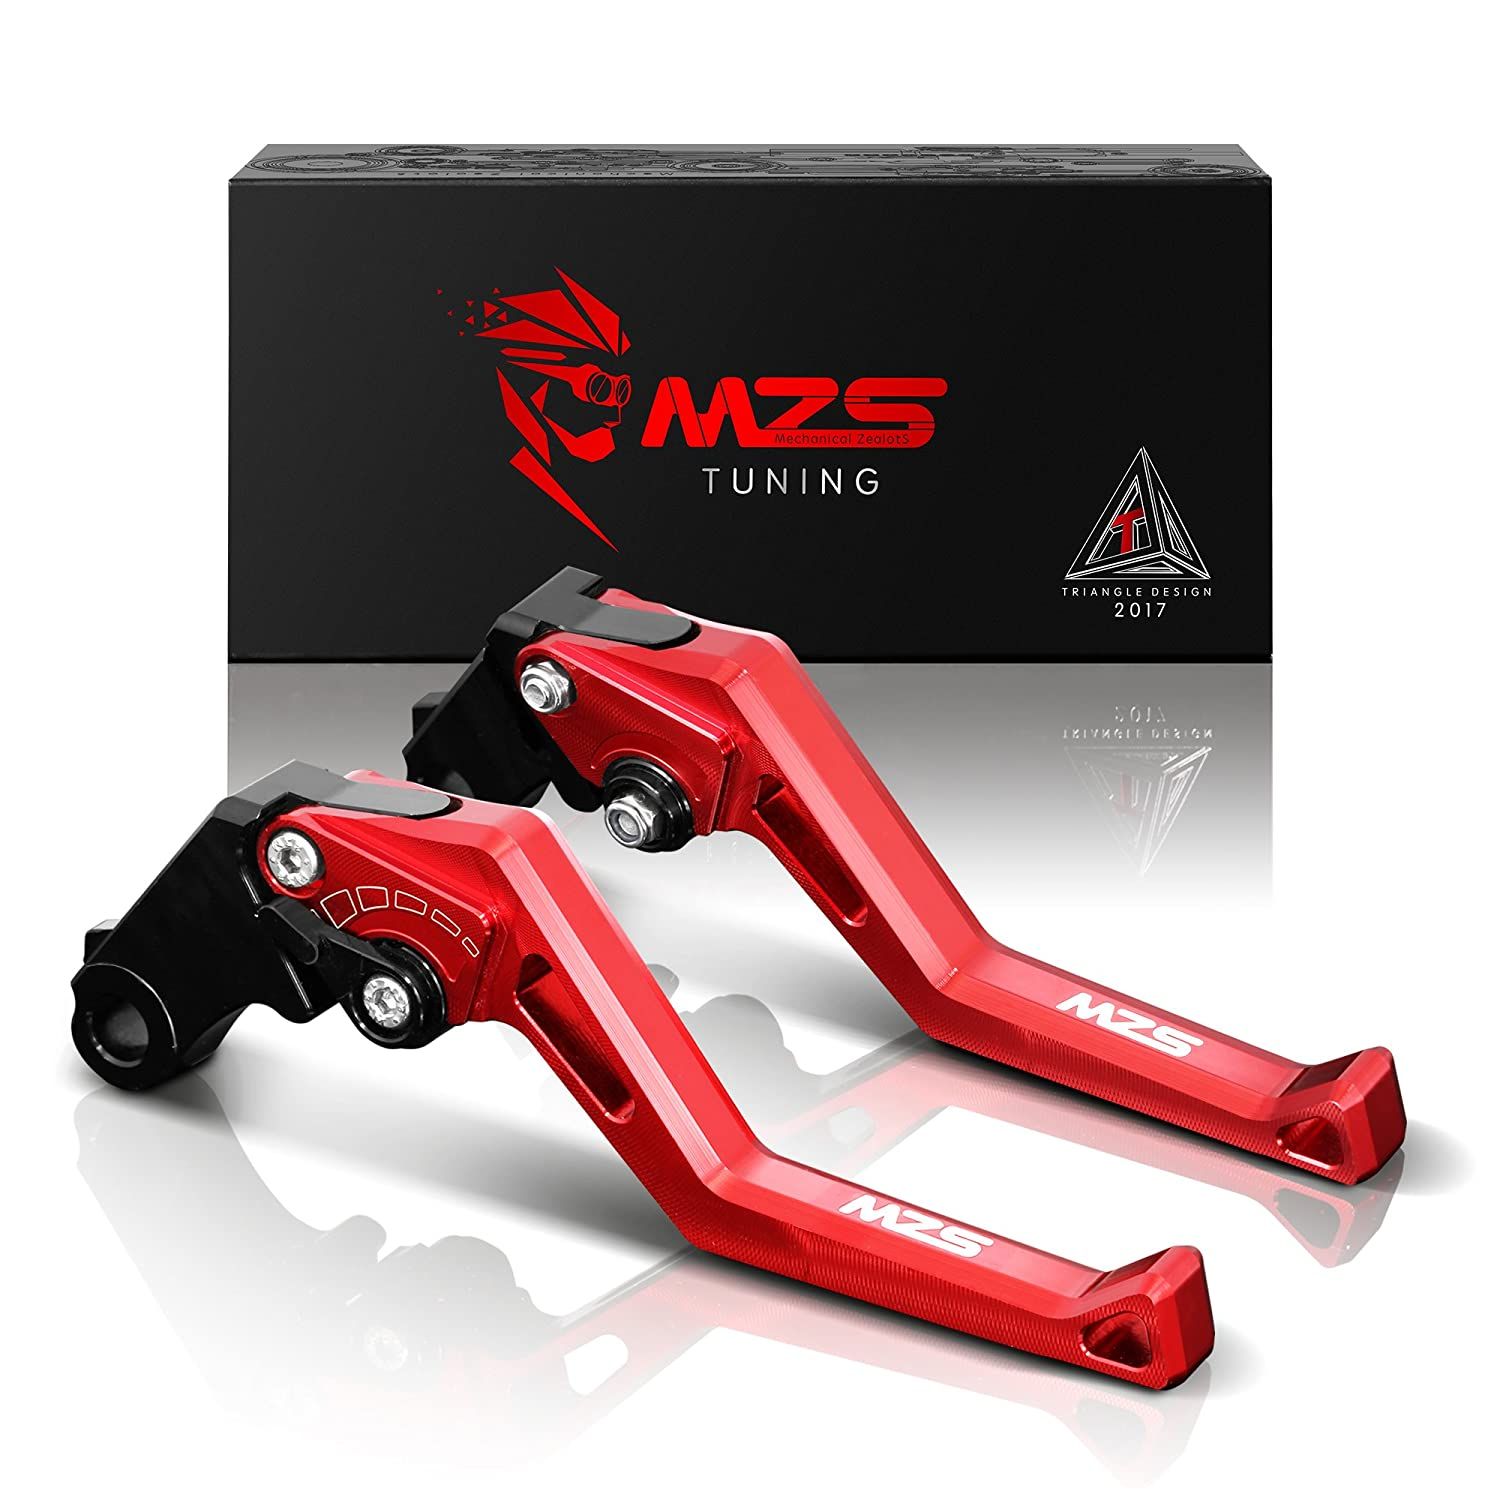 MZS Adjustment Brake Clutch Levers for Yamaha FZ-10/MT-10 2016-2018, FJ-09/MT-09 Tracer 2015-2018 Red